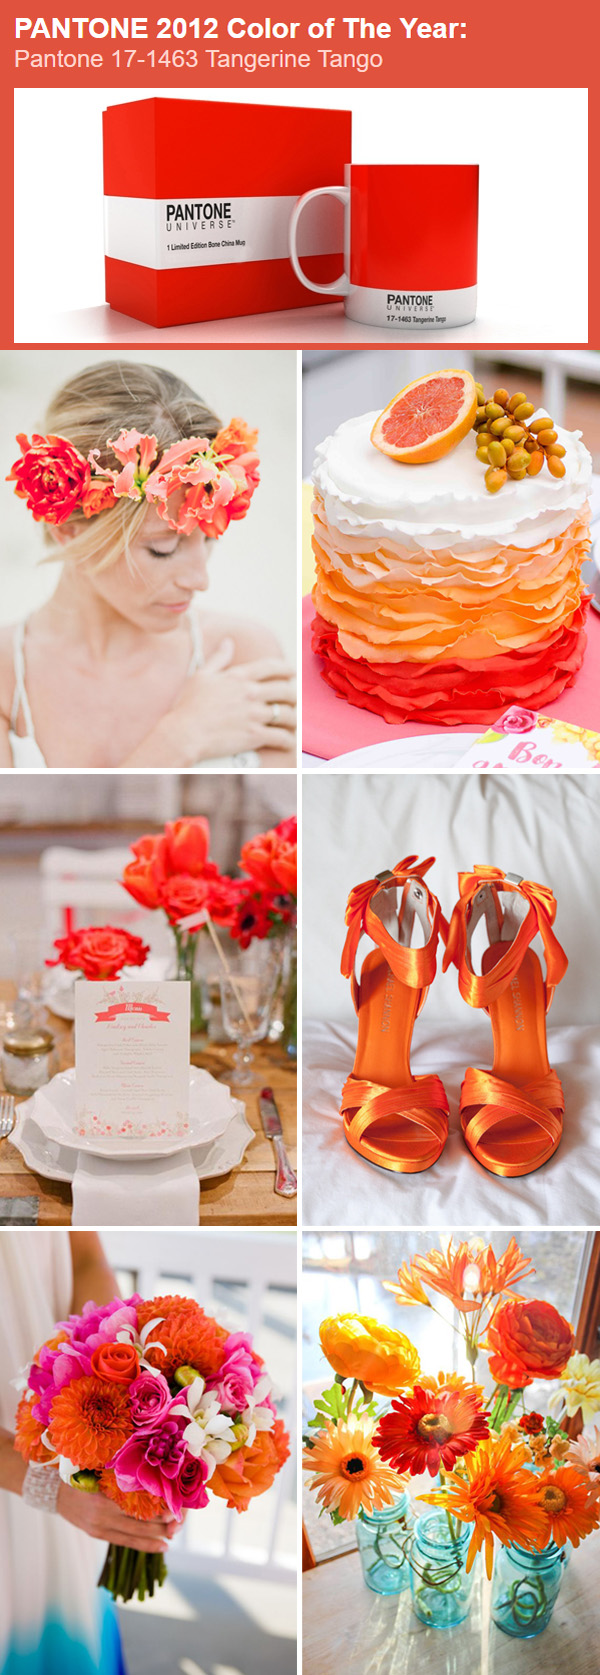 the best wedding color ideas in Tangerine Tango